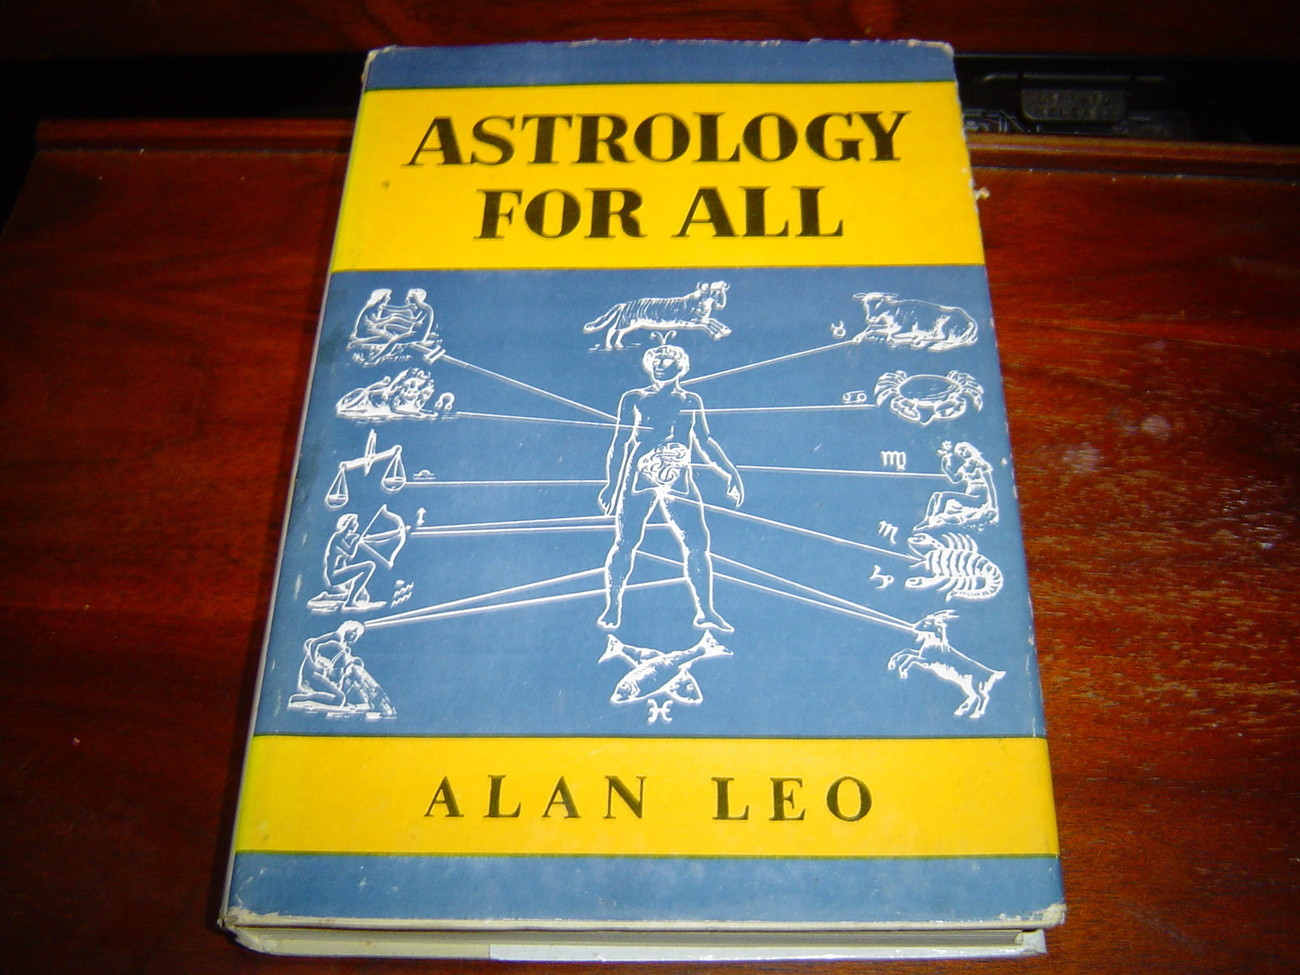 ASTROLOGY FOR ALL by Alan Leo (1964) HARDCOVER